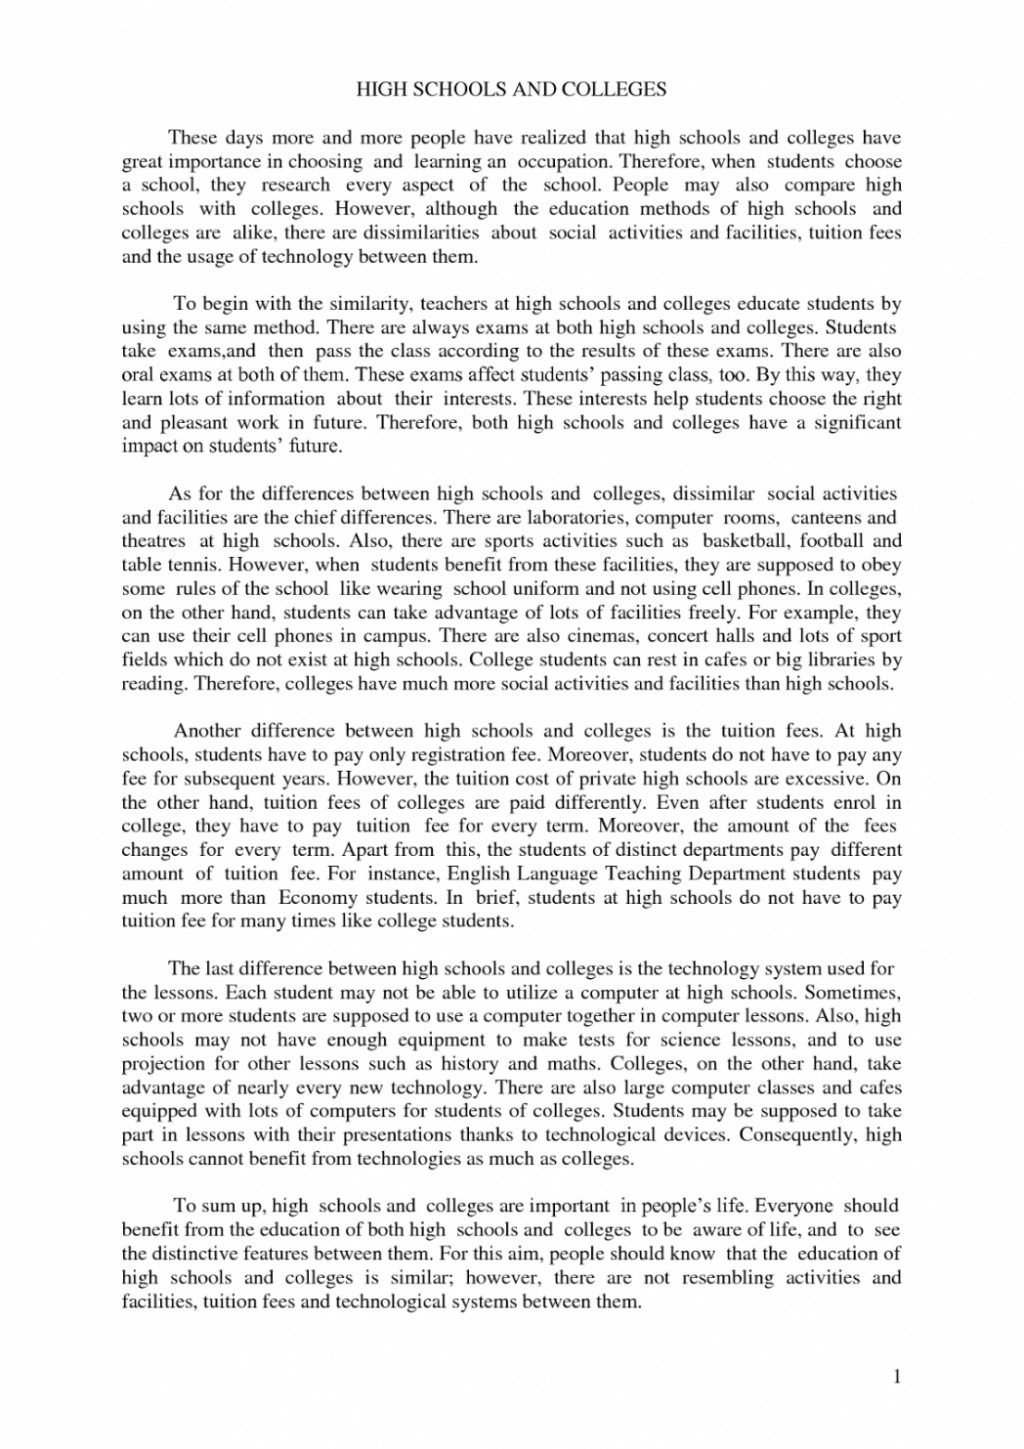 006 Essay Example Compare And Contrast Sample For College Comparison How To Write Formalduction 1048x1483 Top Intro Introduction Paragraph Large